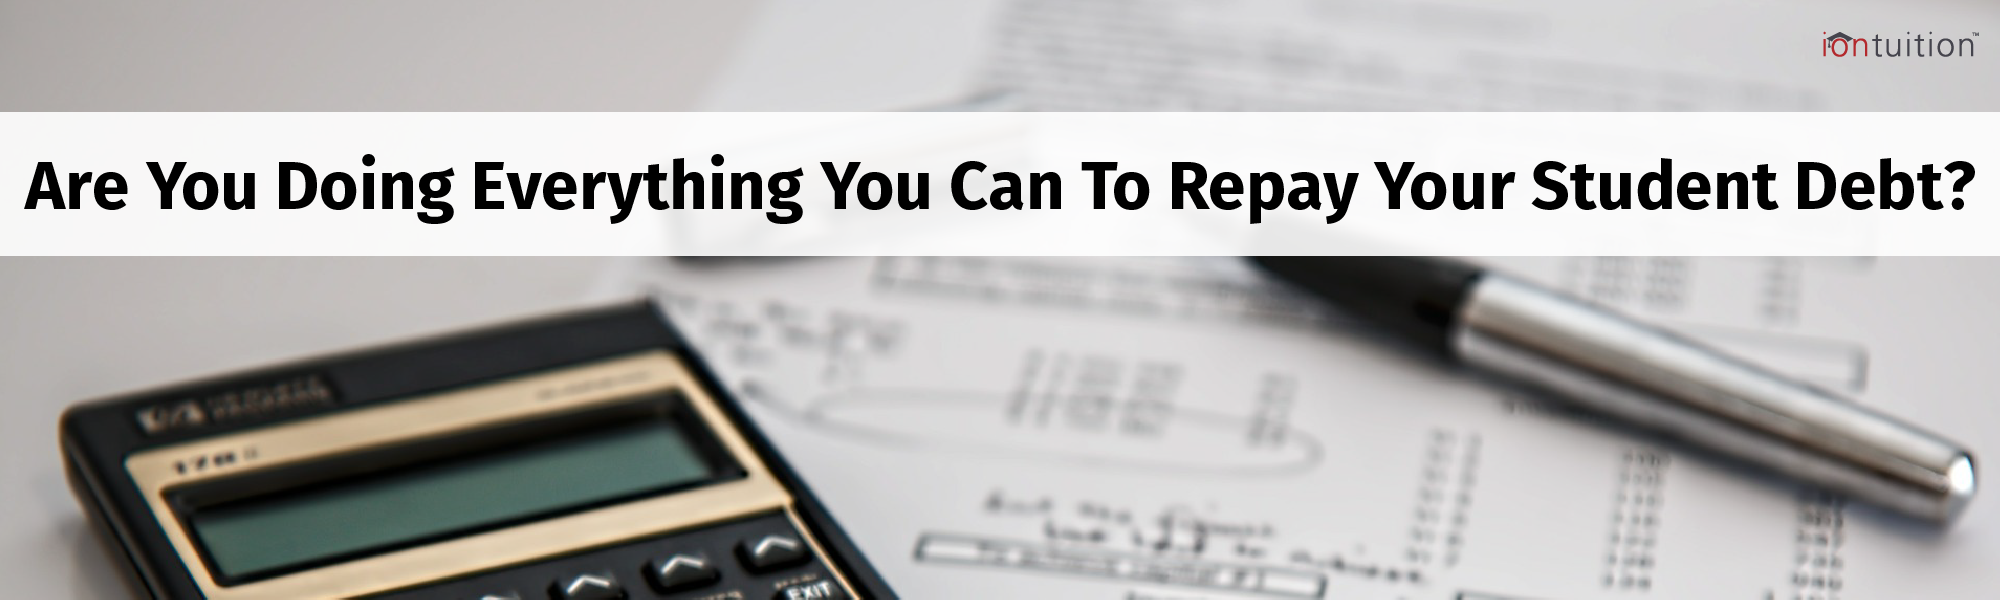 Best Practices For Repaying Student Debt